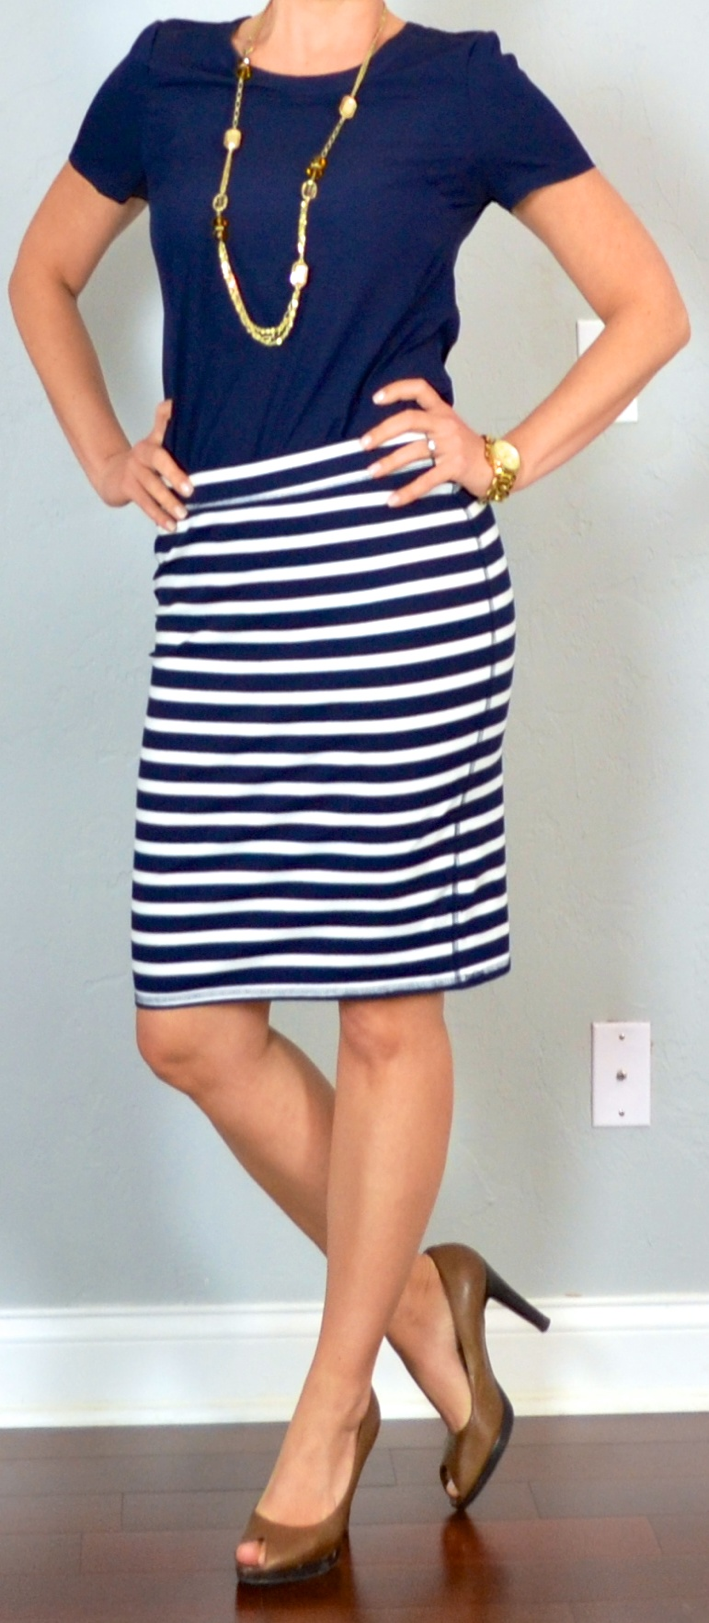 69930f79aa outfit post: navy blouse, striped jersey pencil skirt, brown peep toed pumps